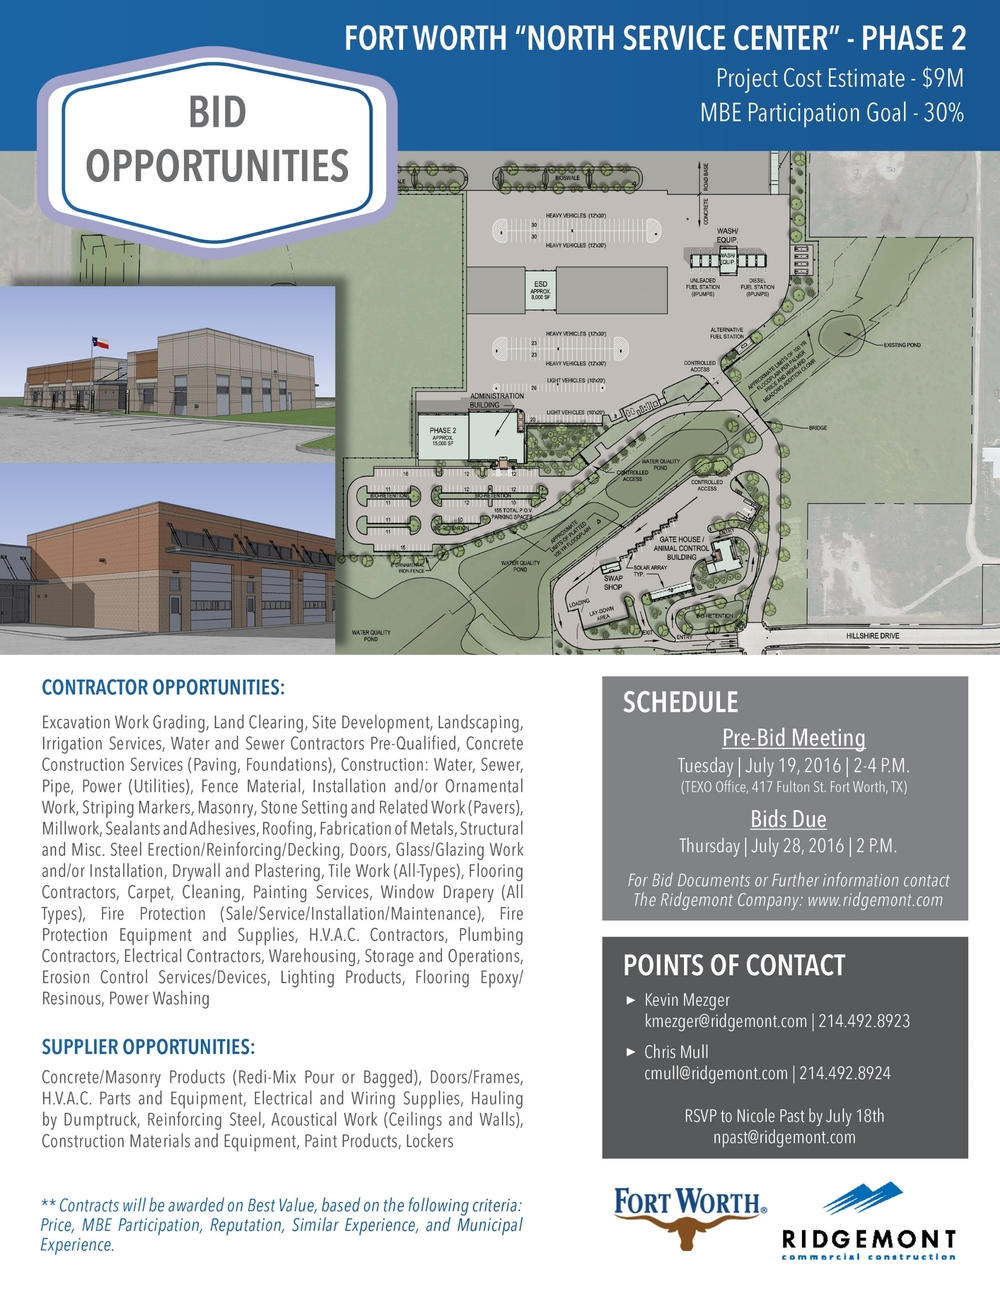 bid opportunity in forth worth ridgemont commercial construction